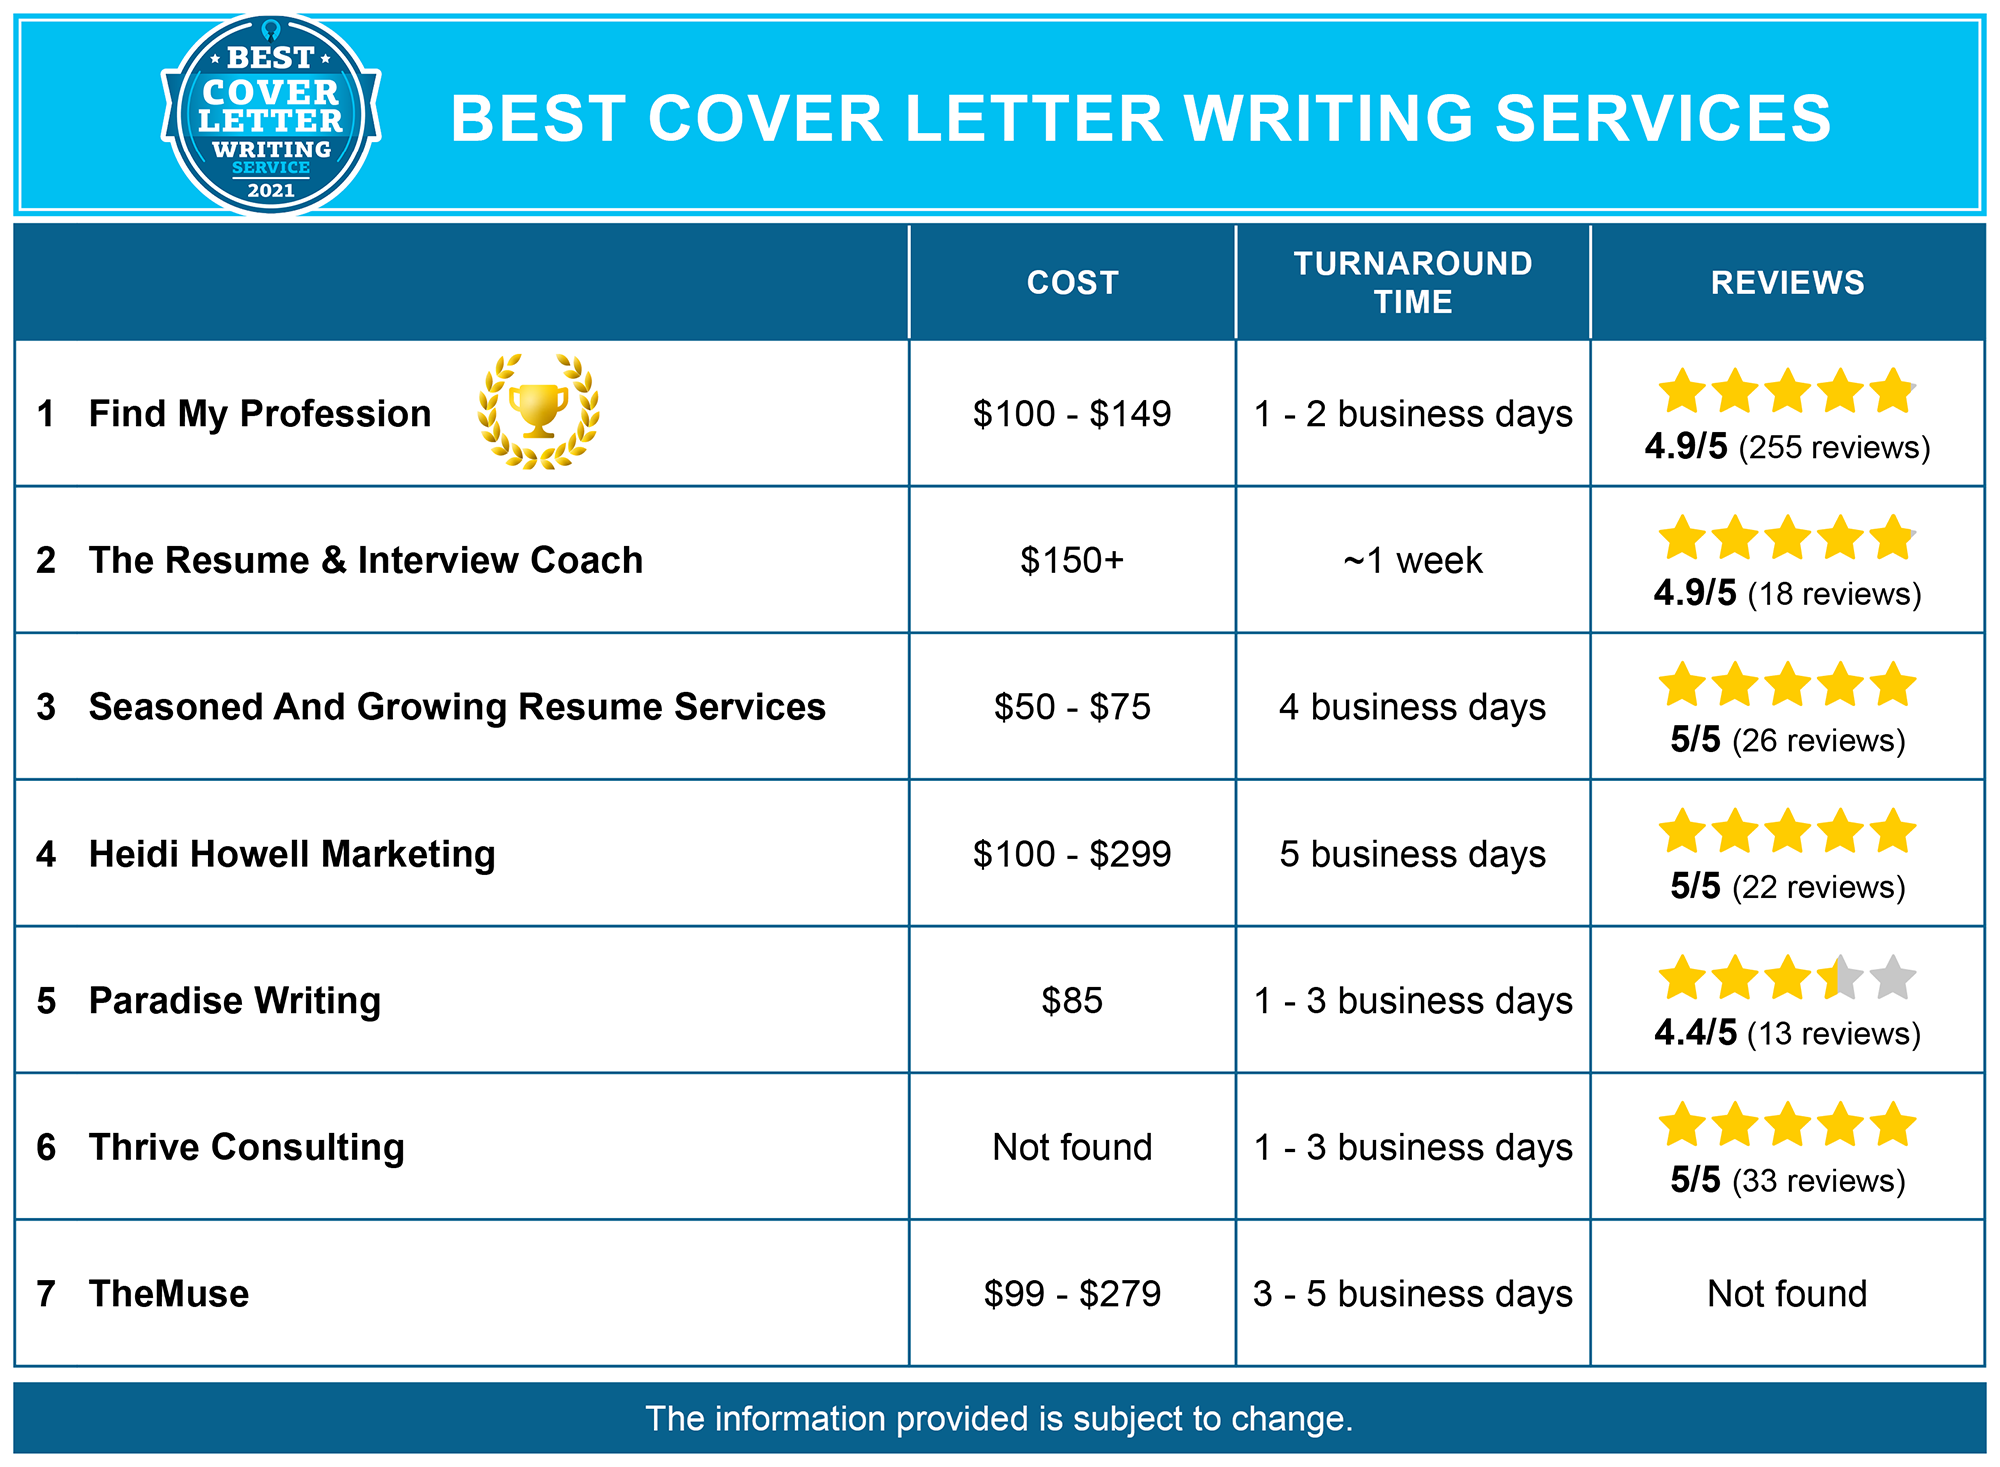 Best Cover Letter Writing Services